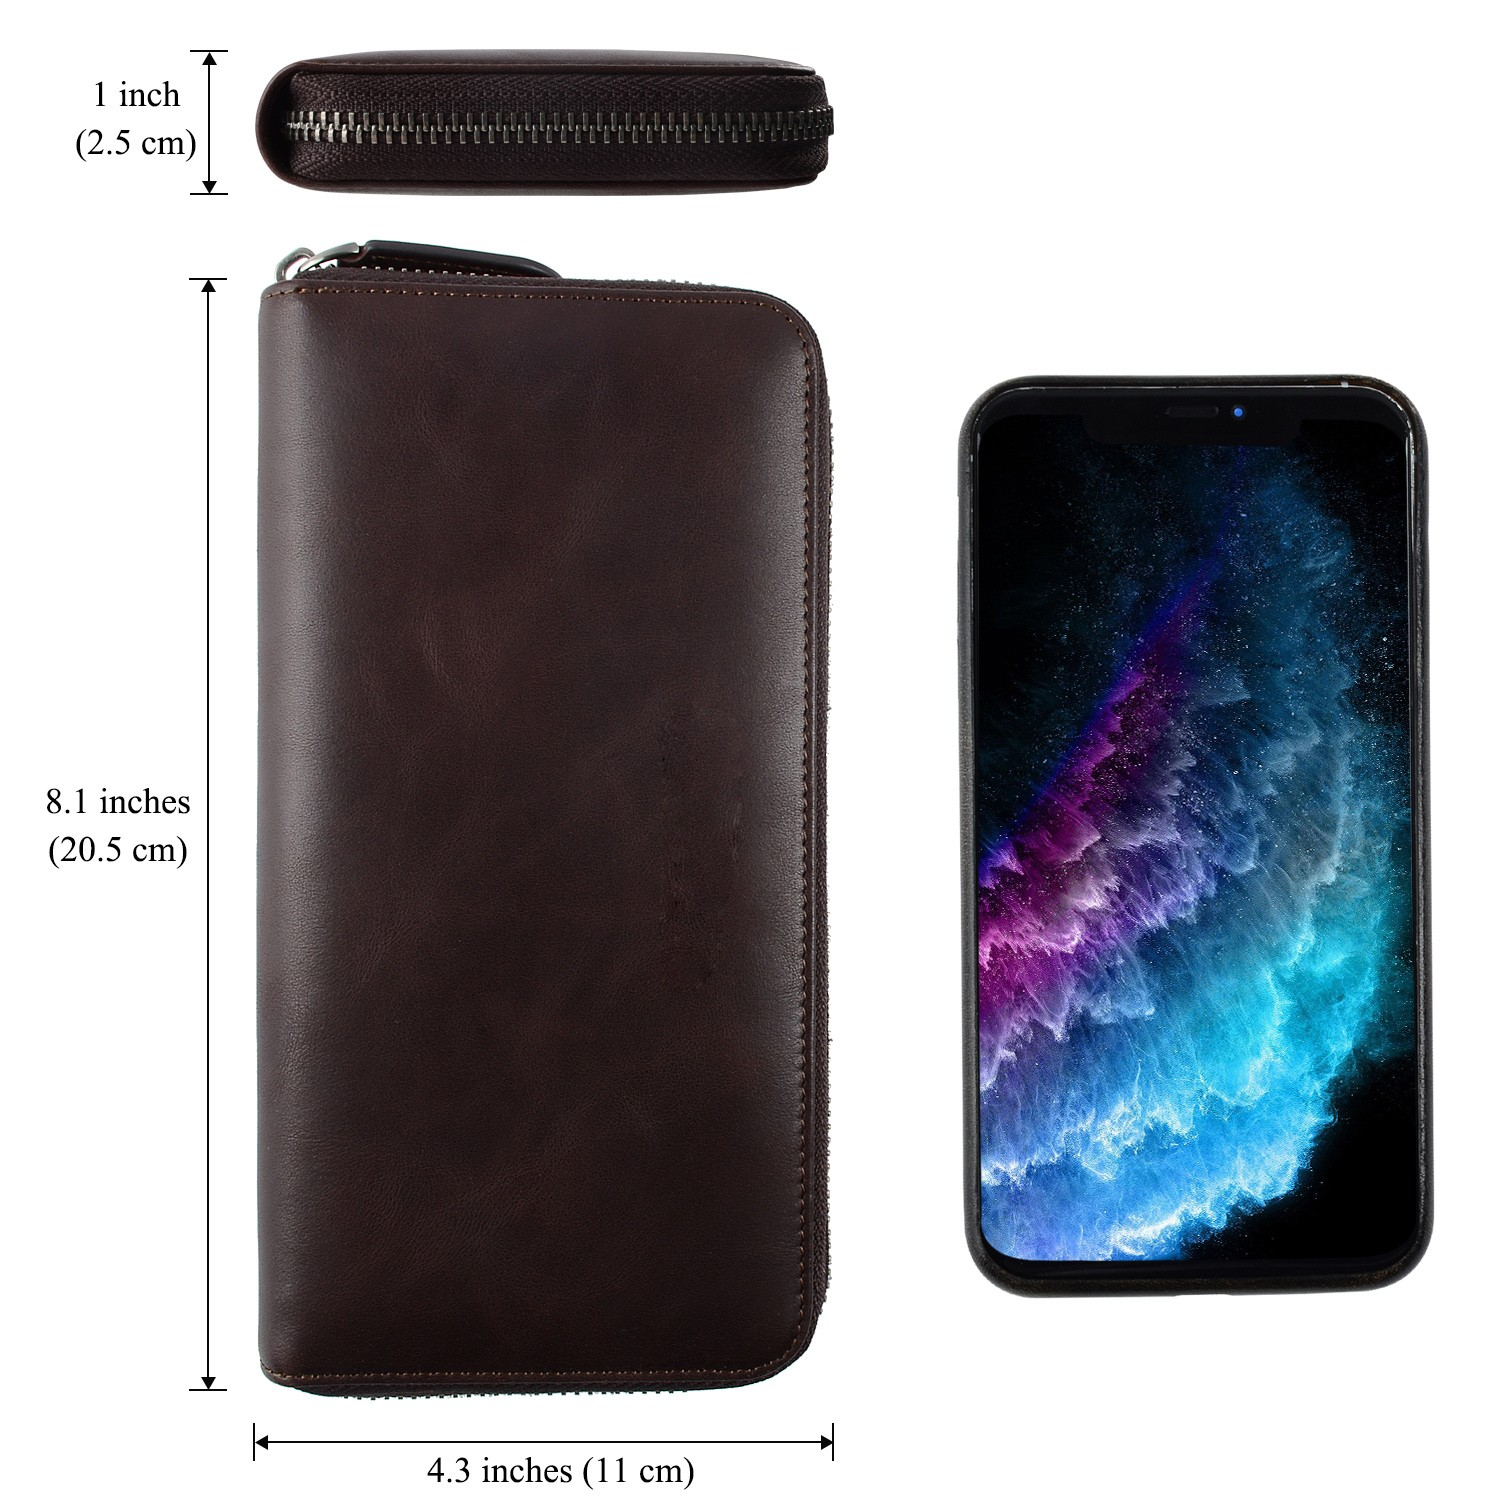 AIVI leather card holder wallet supply for iphone 8 / 8plus-5